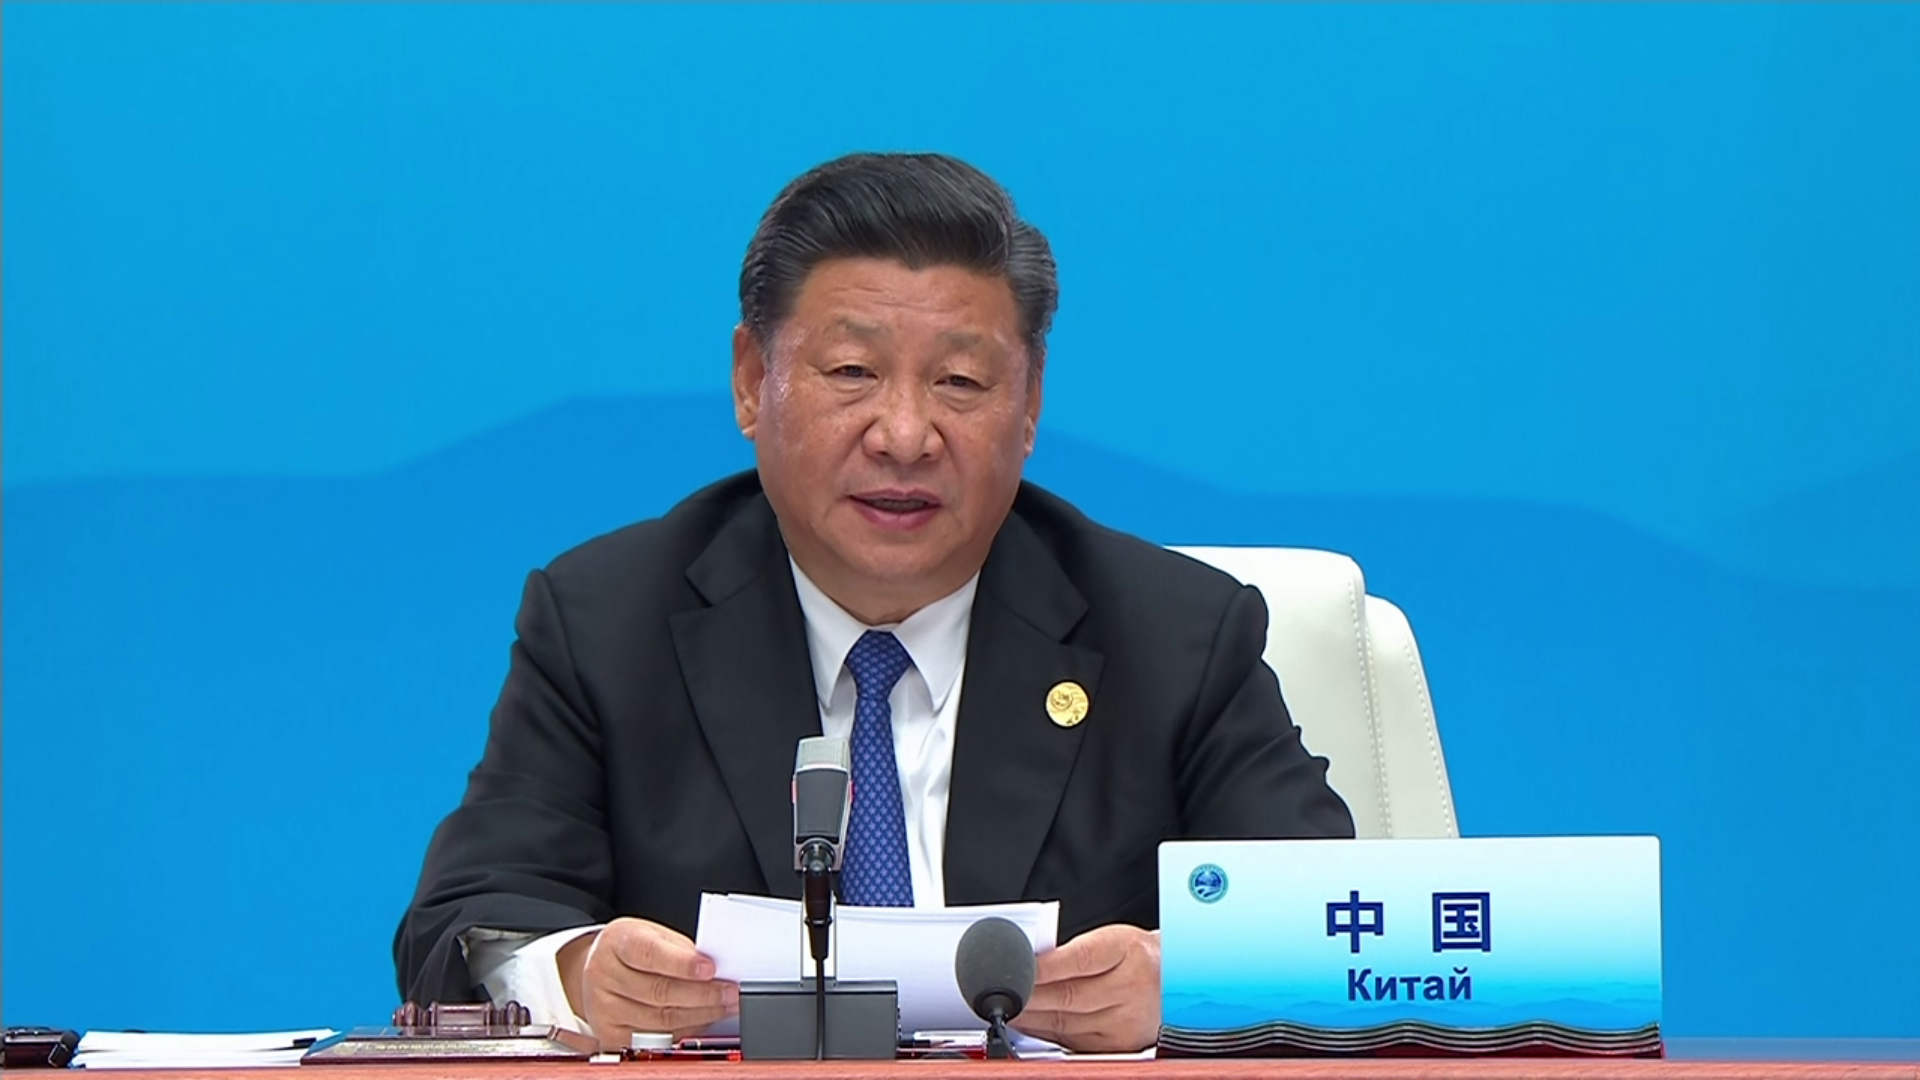 Highlights of Chinese President Xi's speech at 18th SCO Summit